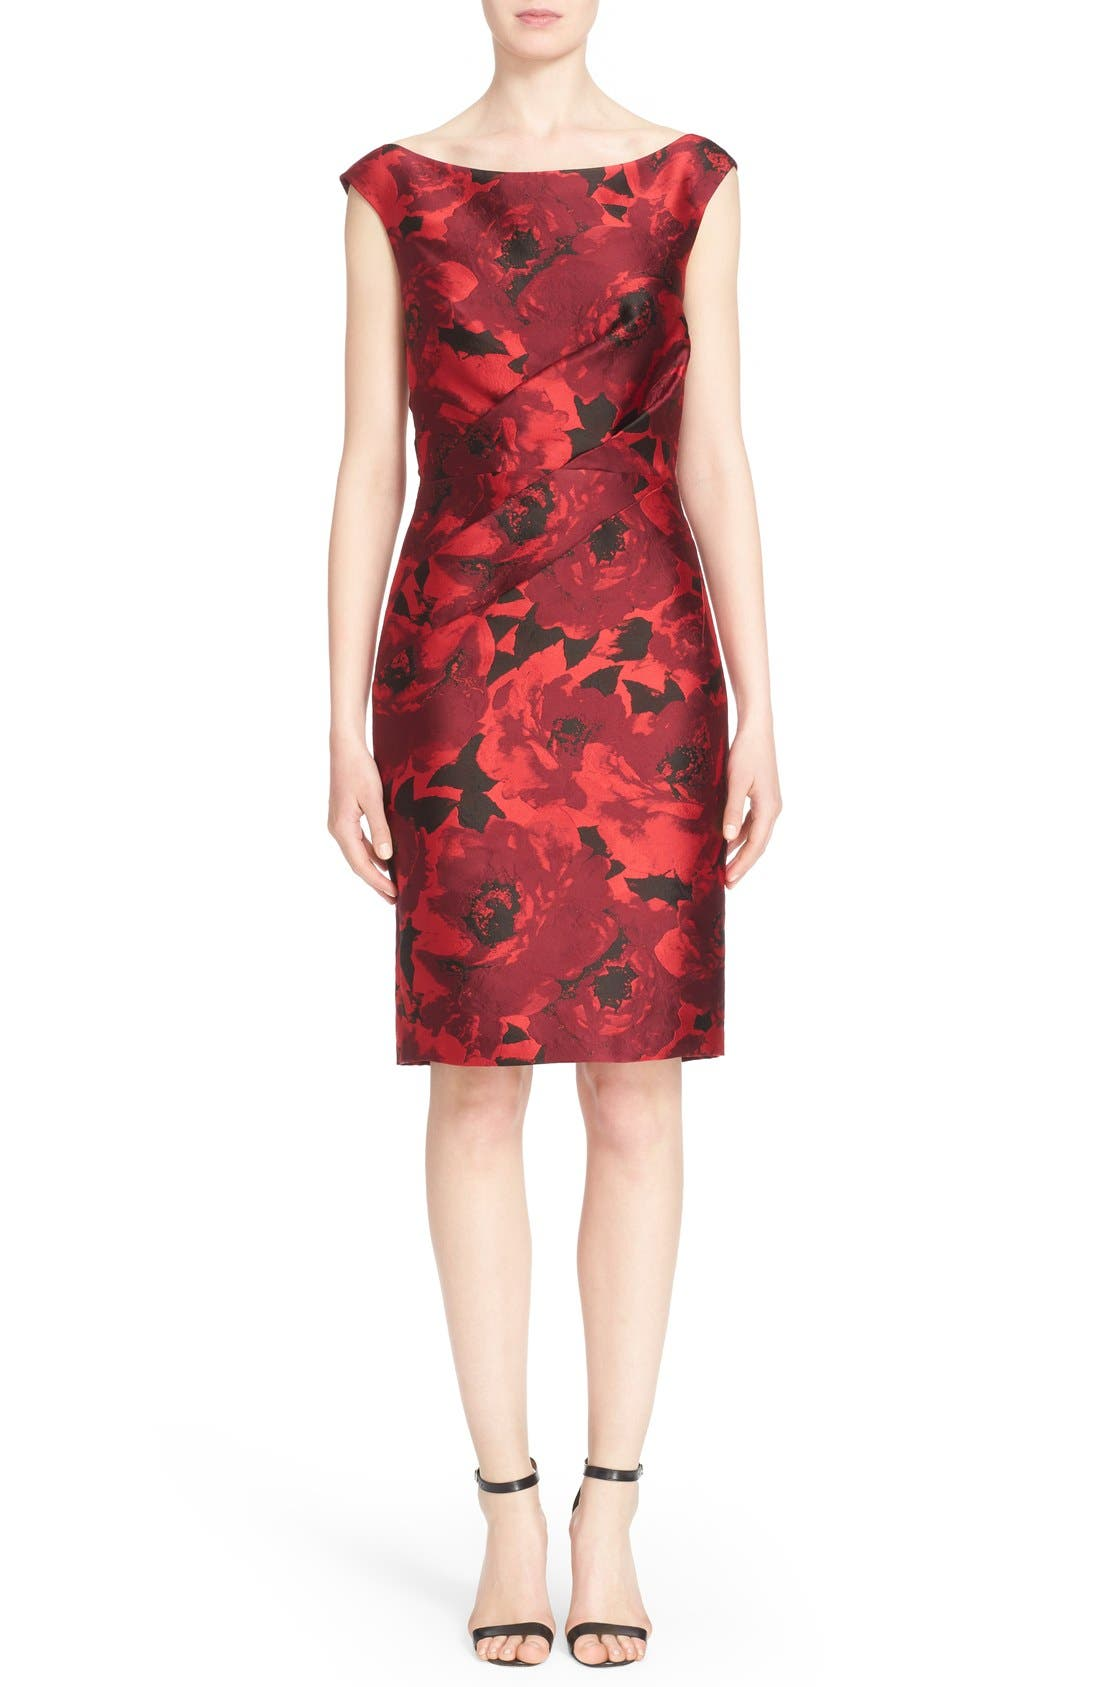 Alternate Image 1 Selected - St. John Collection 'Ombré Peony' Jacquard Sheath Dress